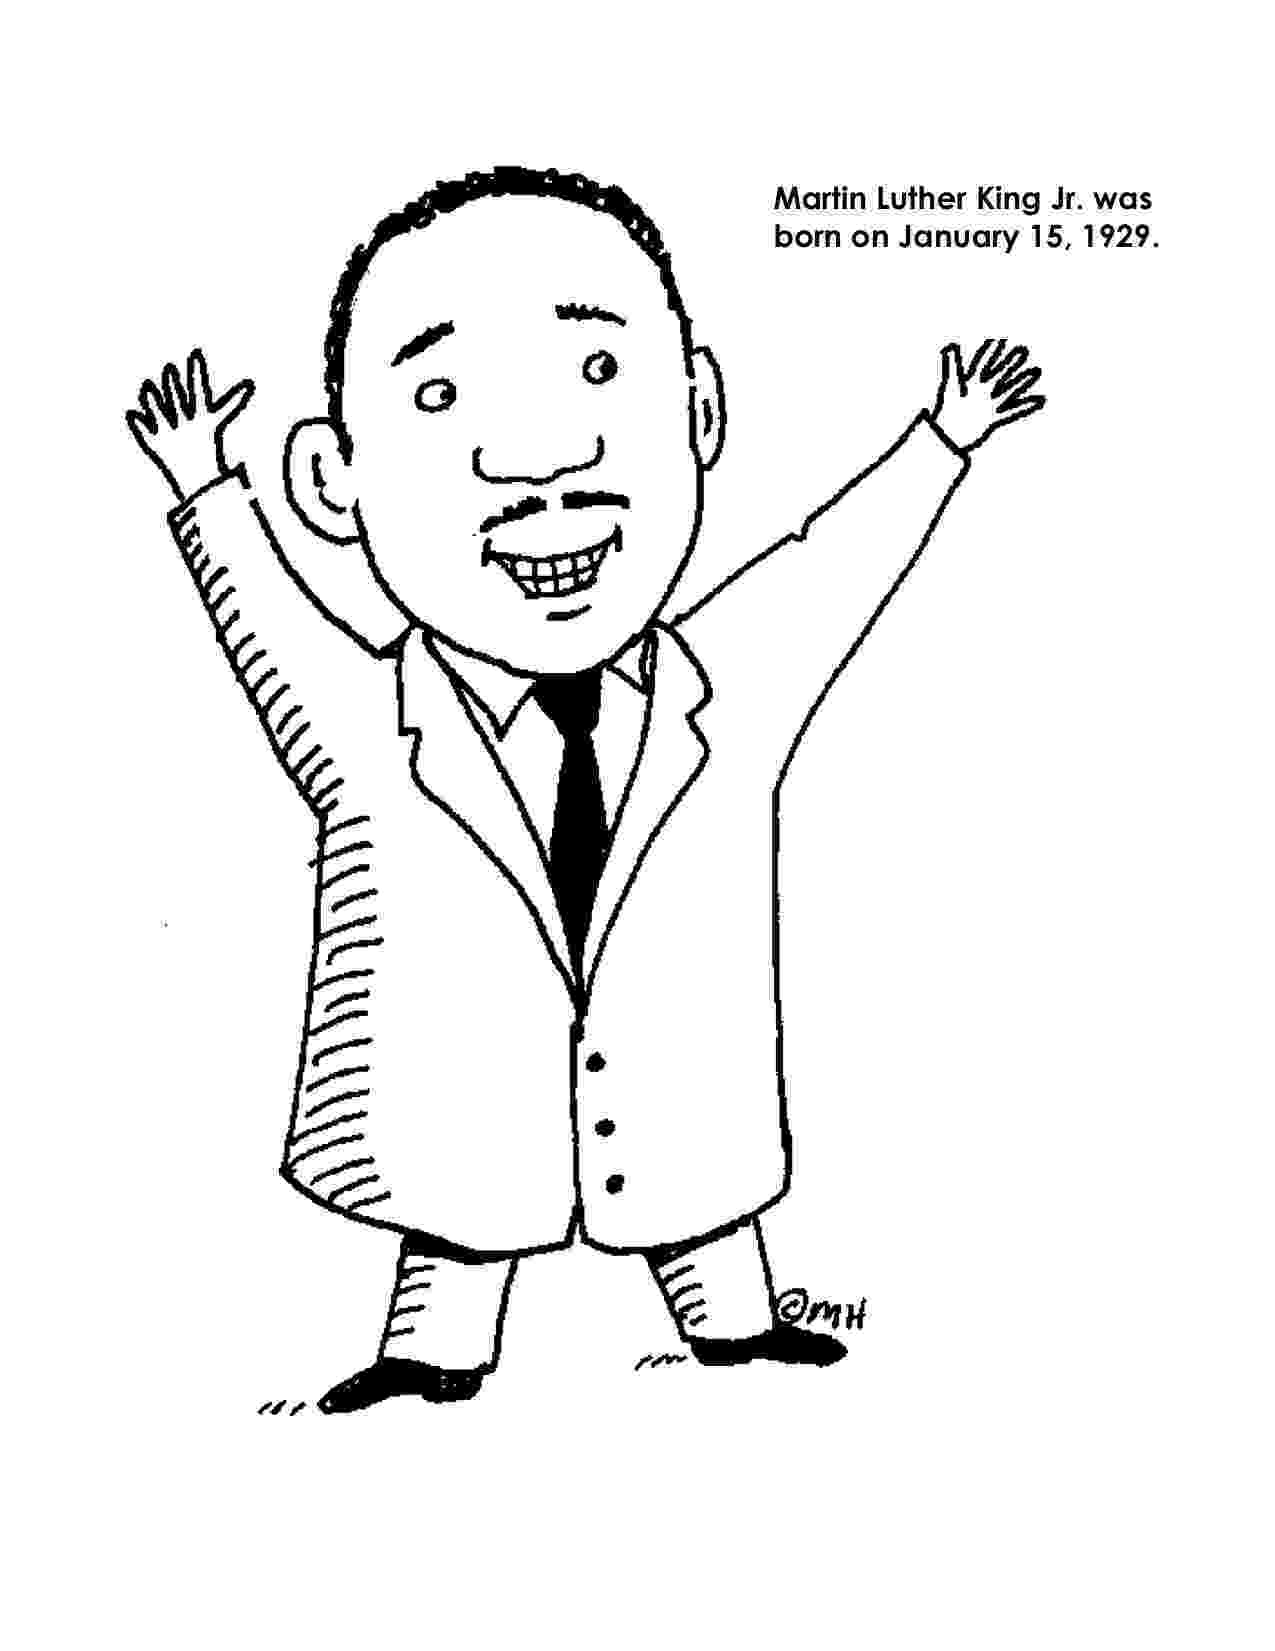 dr martin luther king jr coloring pages martin luther king jr coloring pages and worksheets best dr king jr luther martin coloring pages